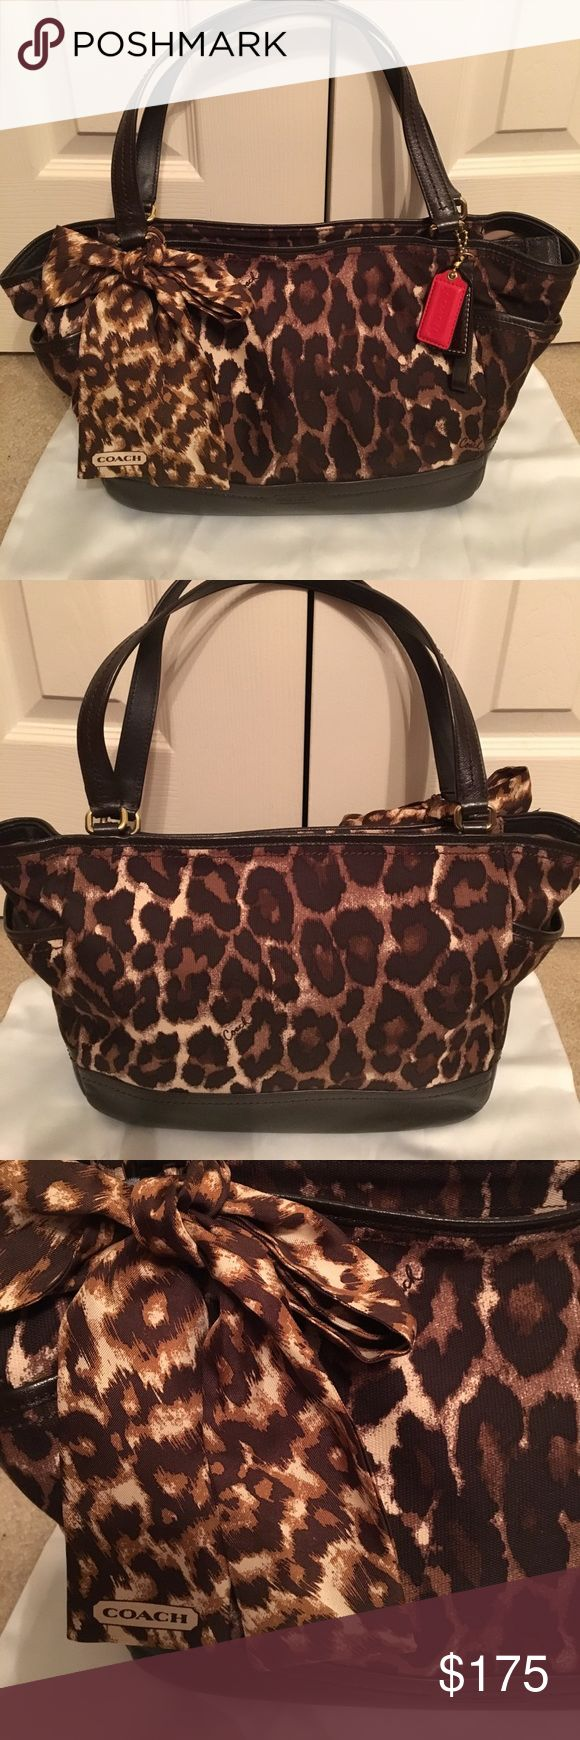 EUC Coach shoulder bag stunning 🦋🐬💕🌹 Absolutely gorgeous Coach animal print shoulder bag. Looks brand new in my opinion!!! This bag will not disappoint at all!! Tv will be higher❤️😘😊💕🐬🦋🌹😍💋👛🌈 Coach Bags Shoulder Bags